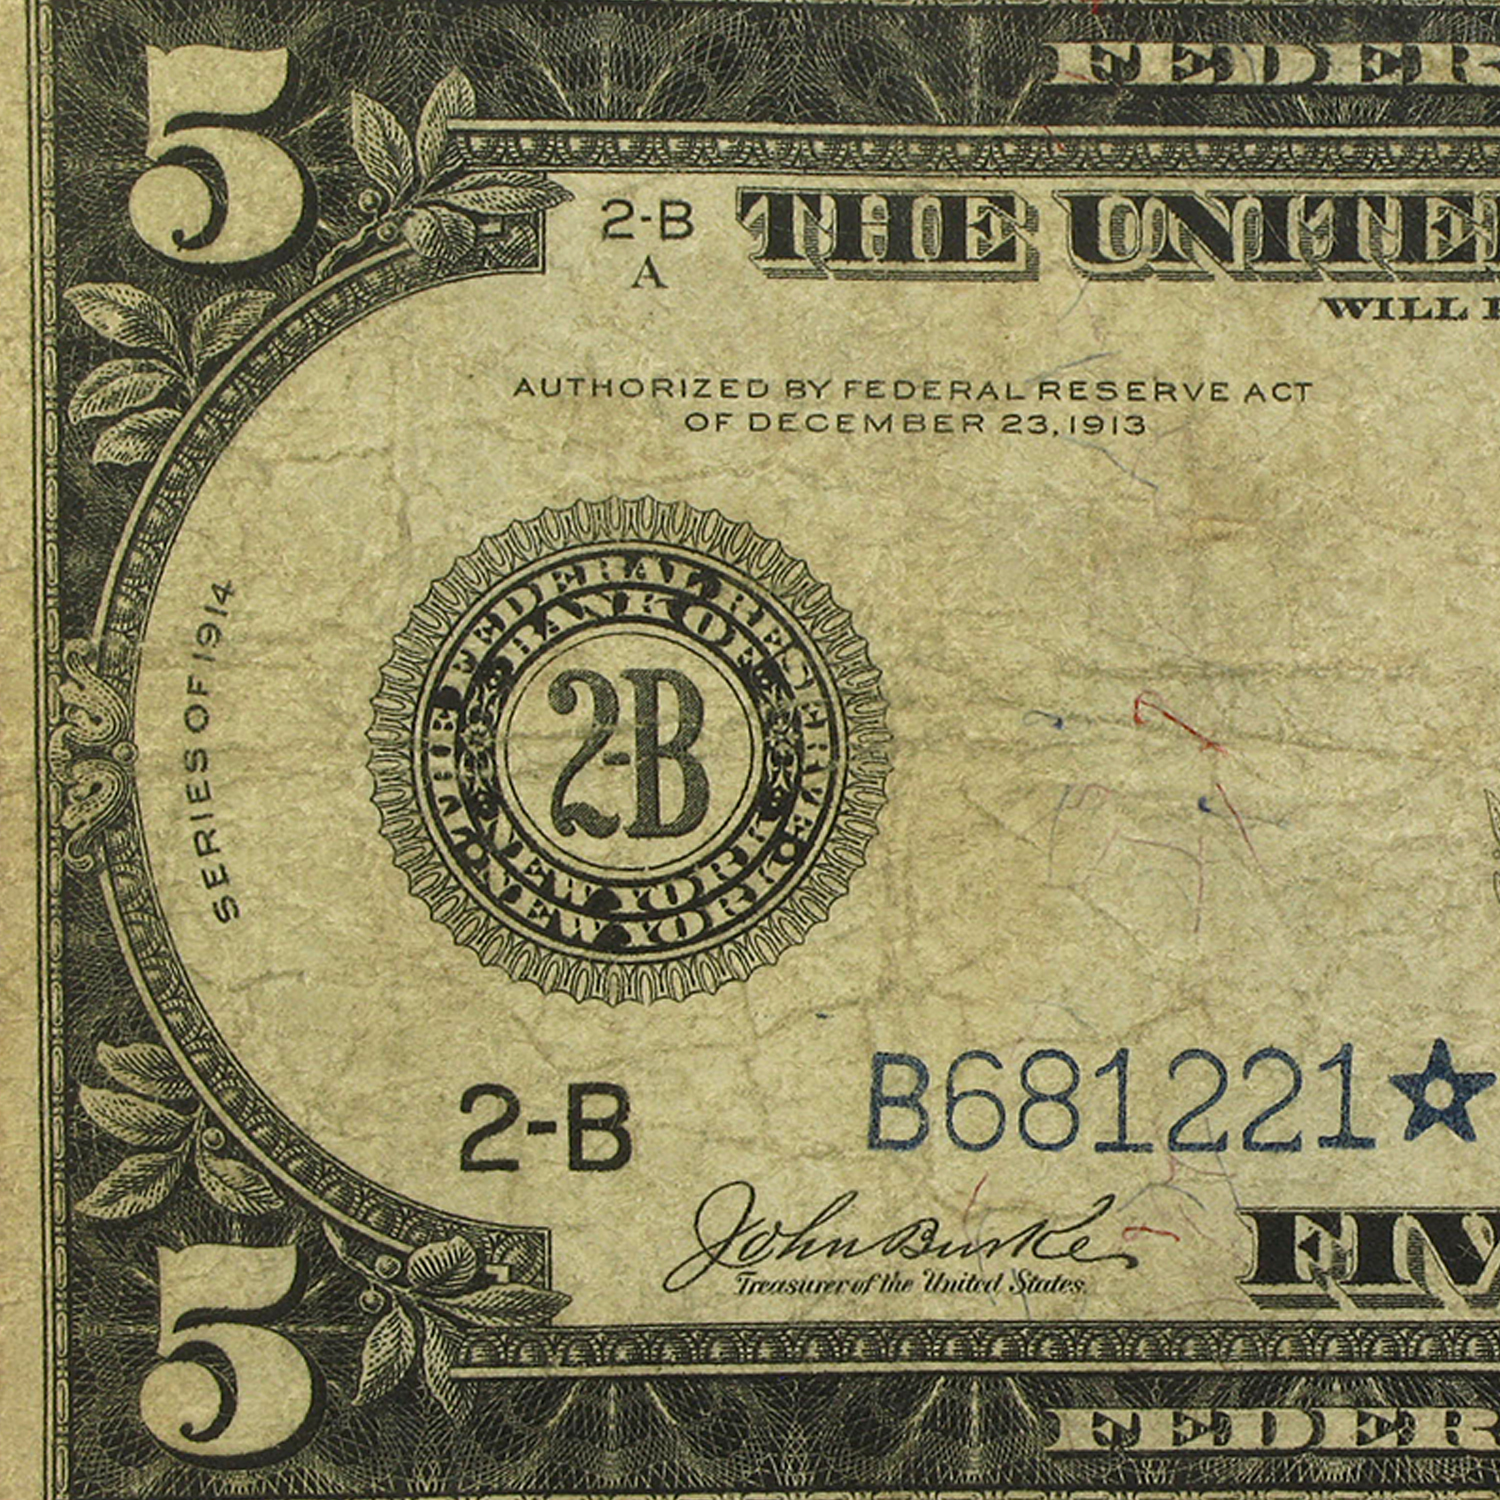 1914* (B-New York) $5.00 FRN Fine (Star Note)